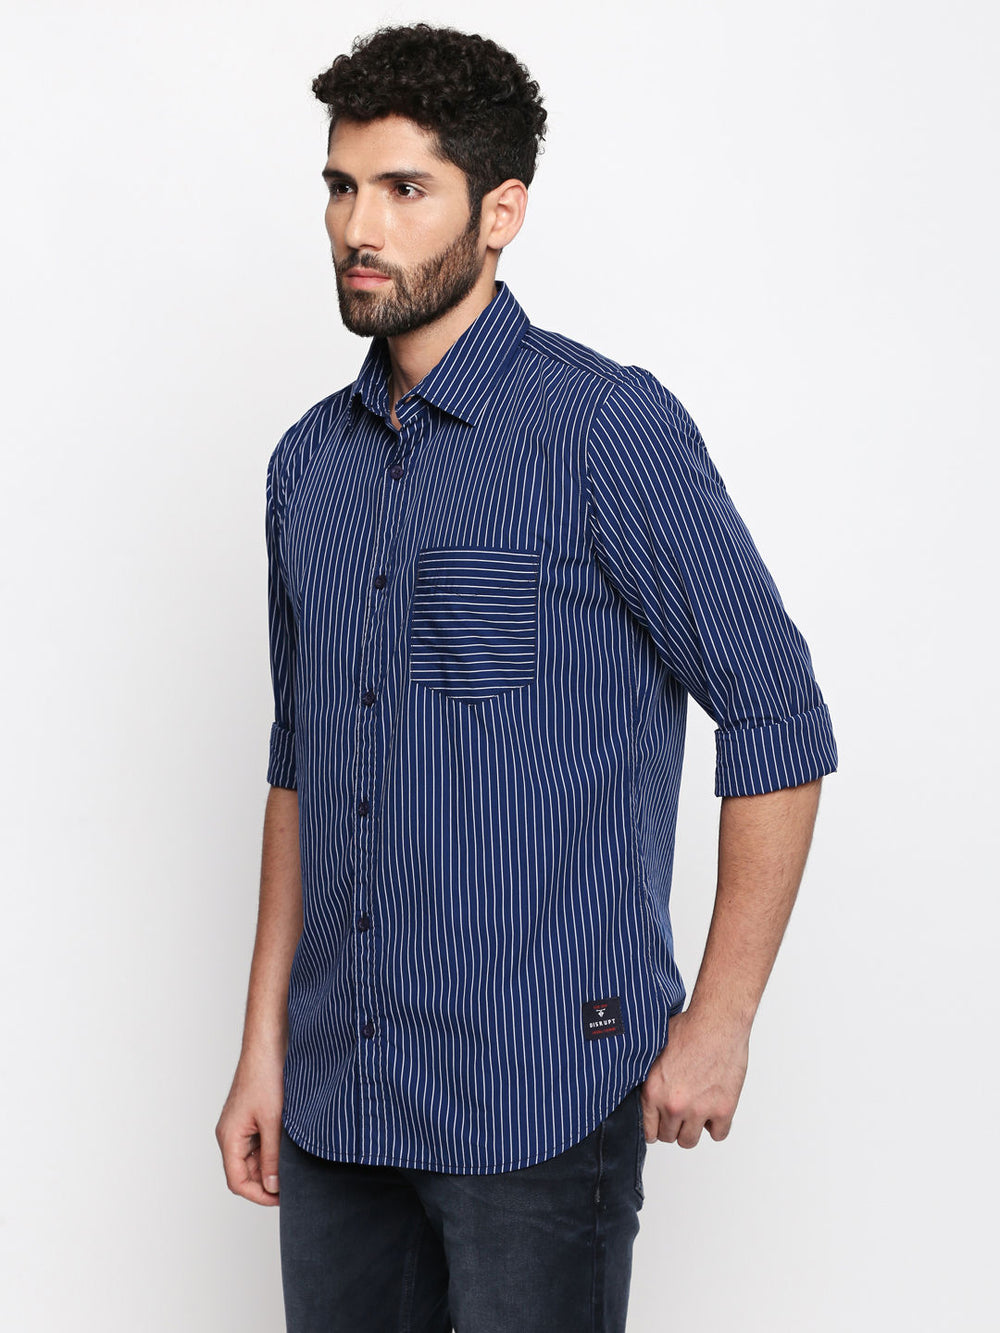 Disrupt Navy-Blue Cotton Fabric Full Sleeve striped Shirt For Men's